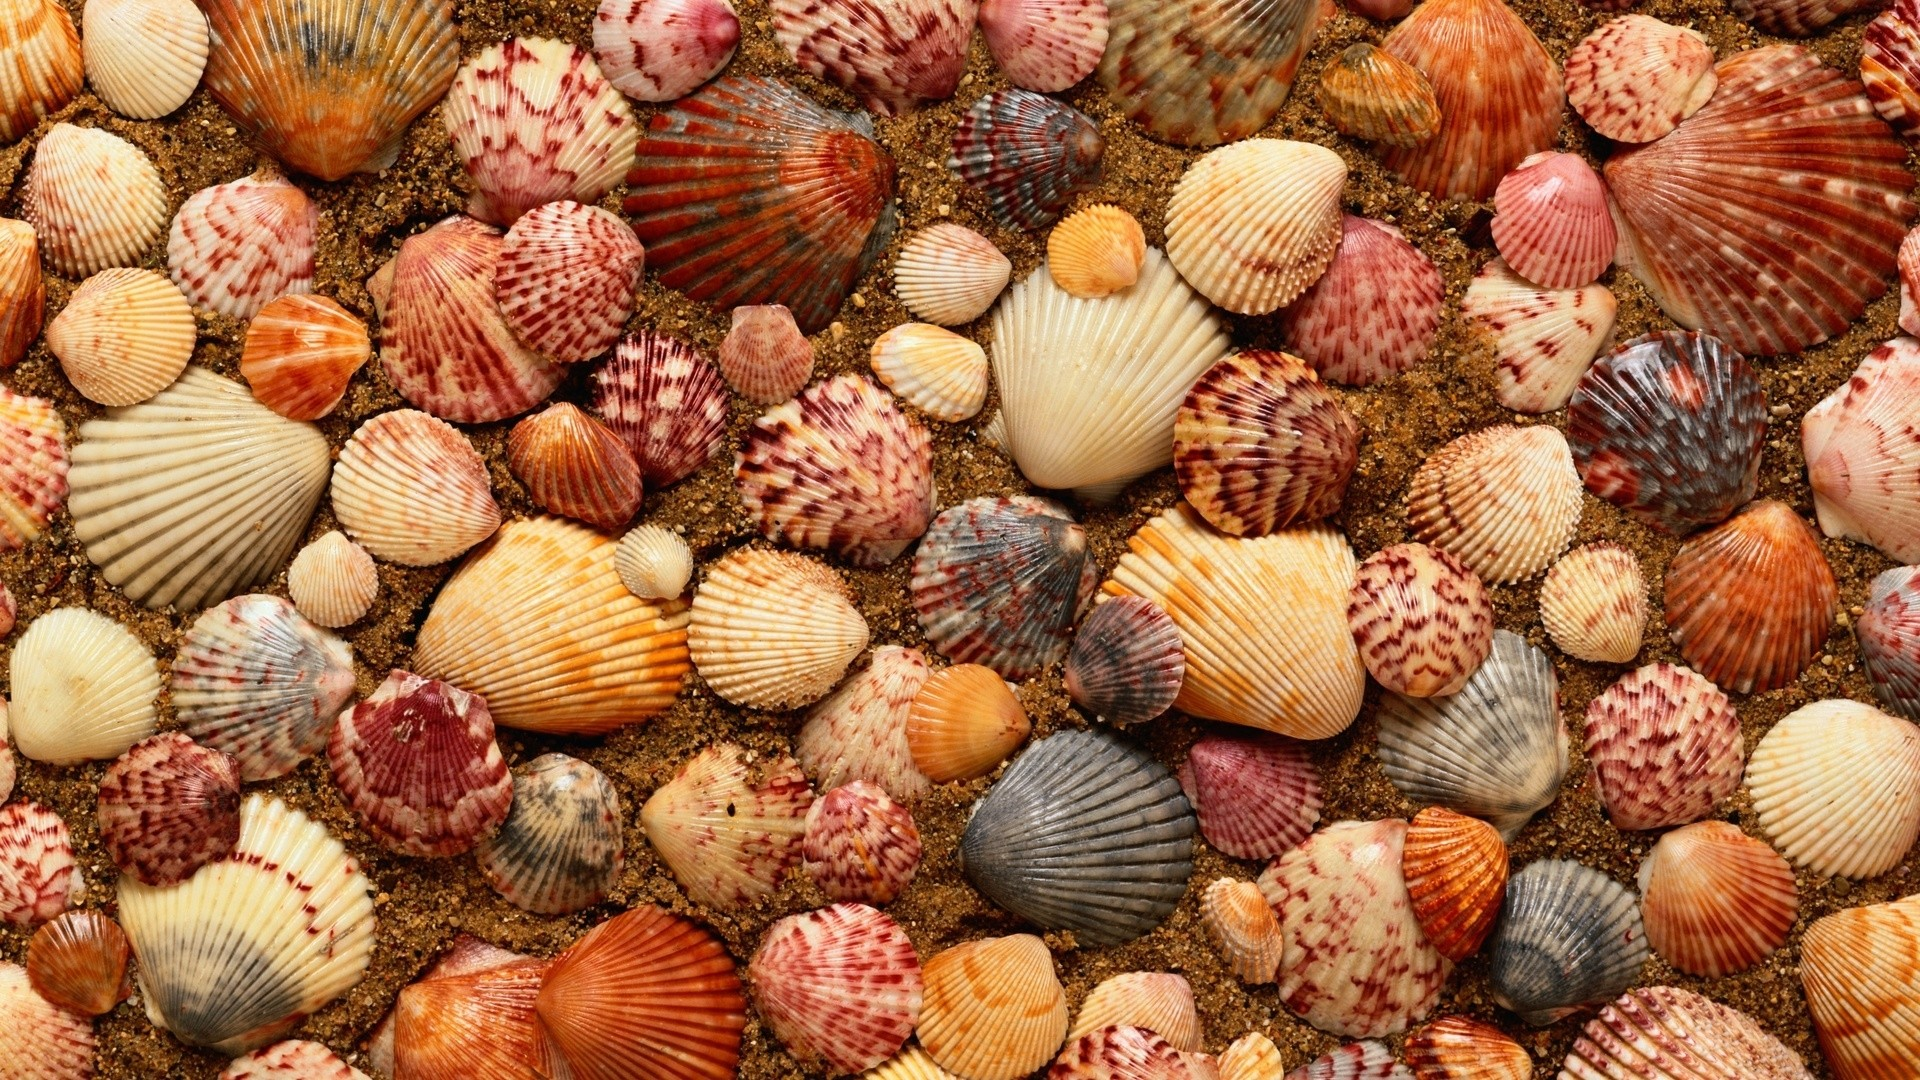 Seashell hd wallpaper download